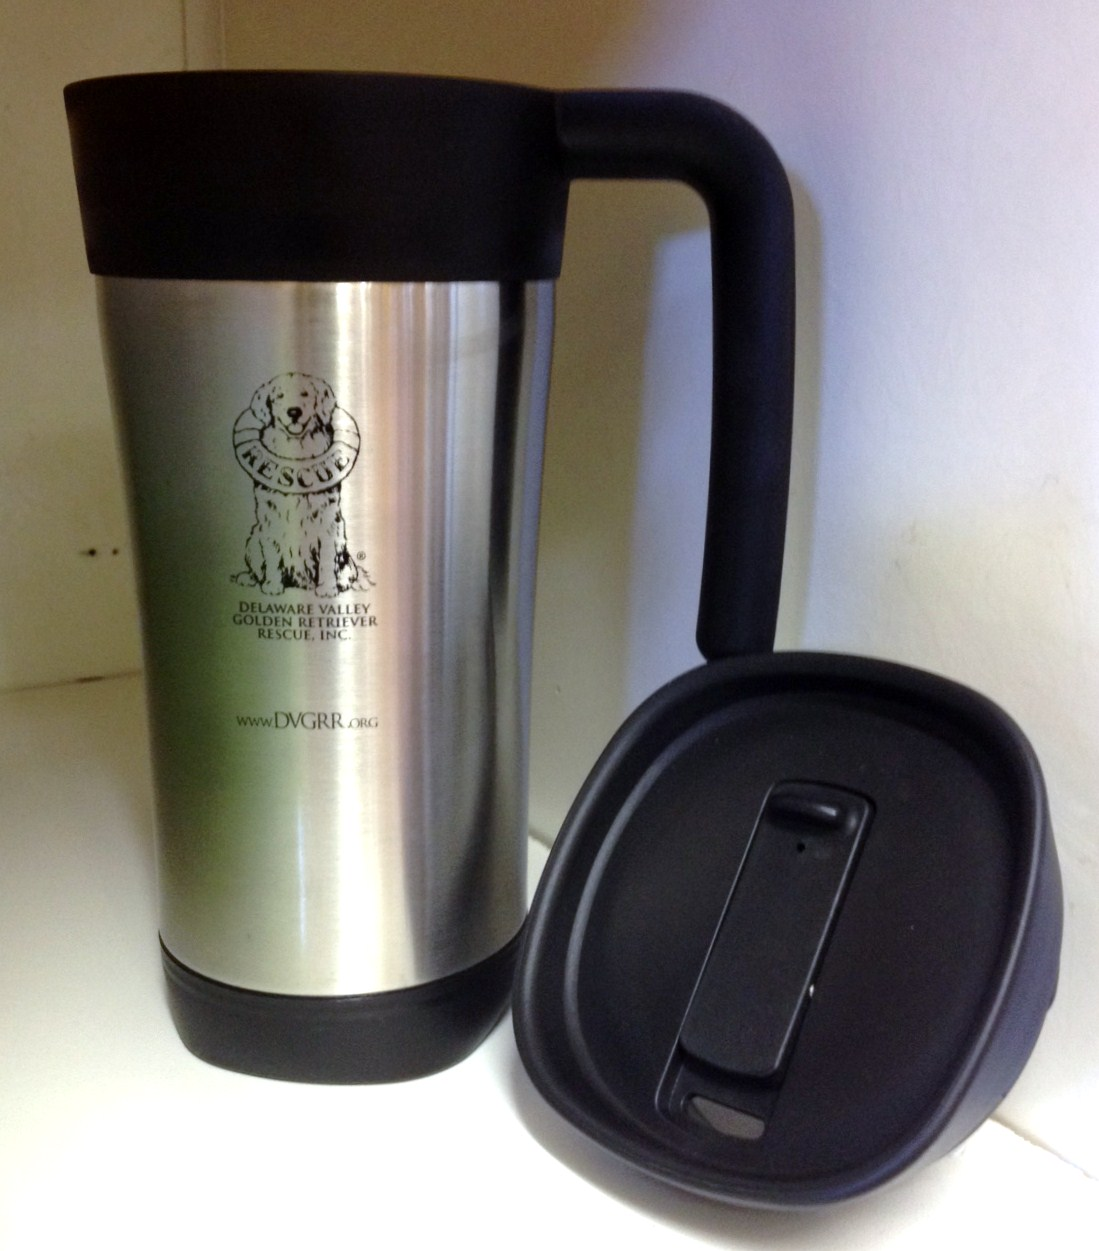 dvgrr travel mug delaware valley golden retriever rescue